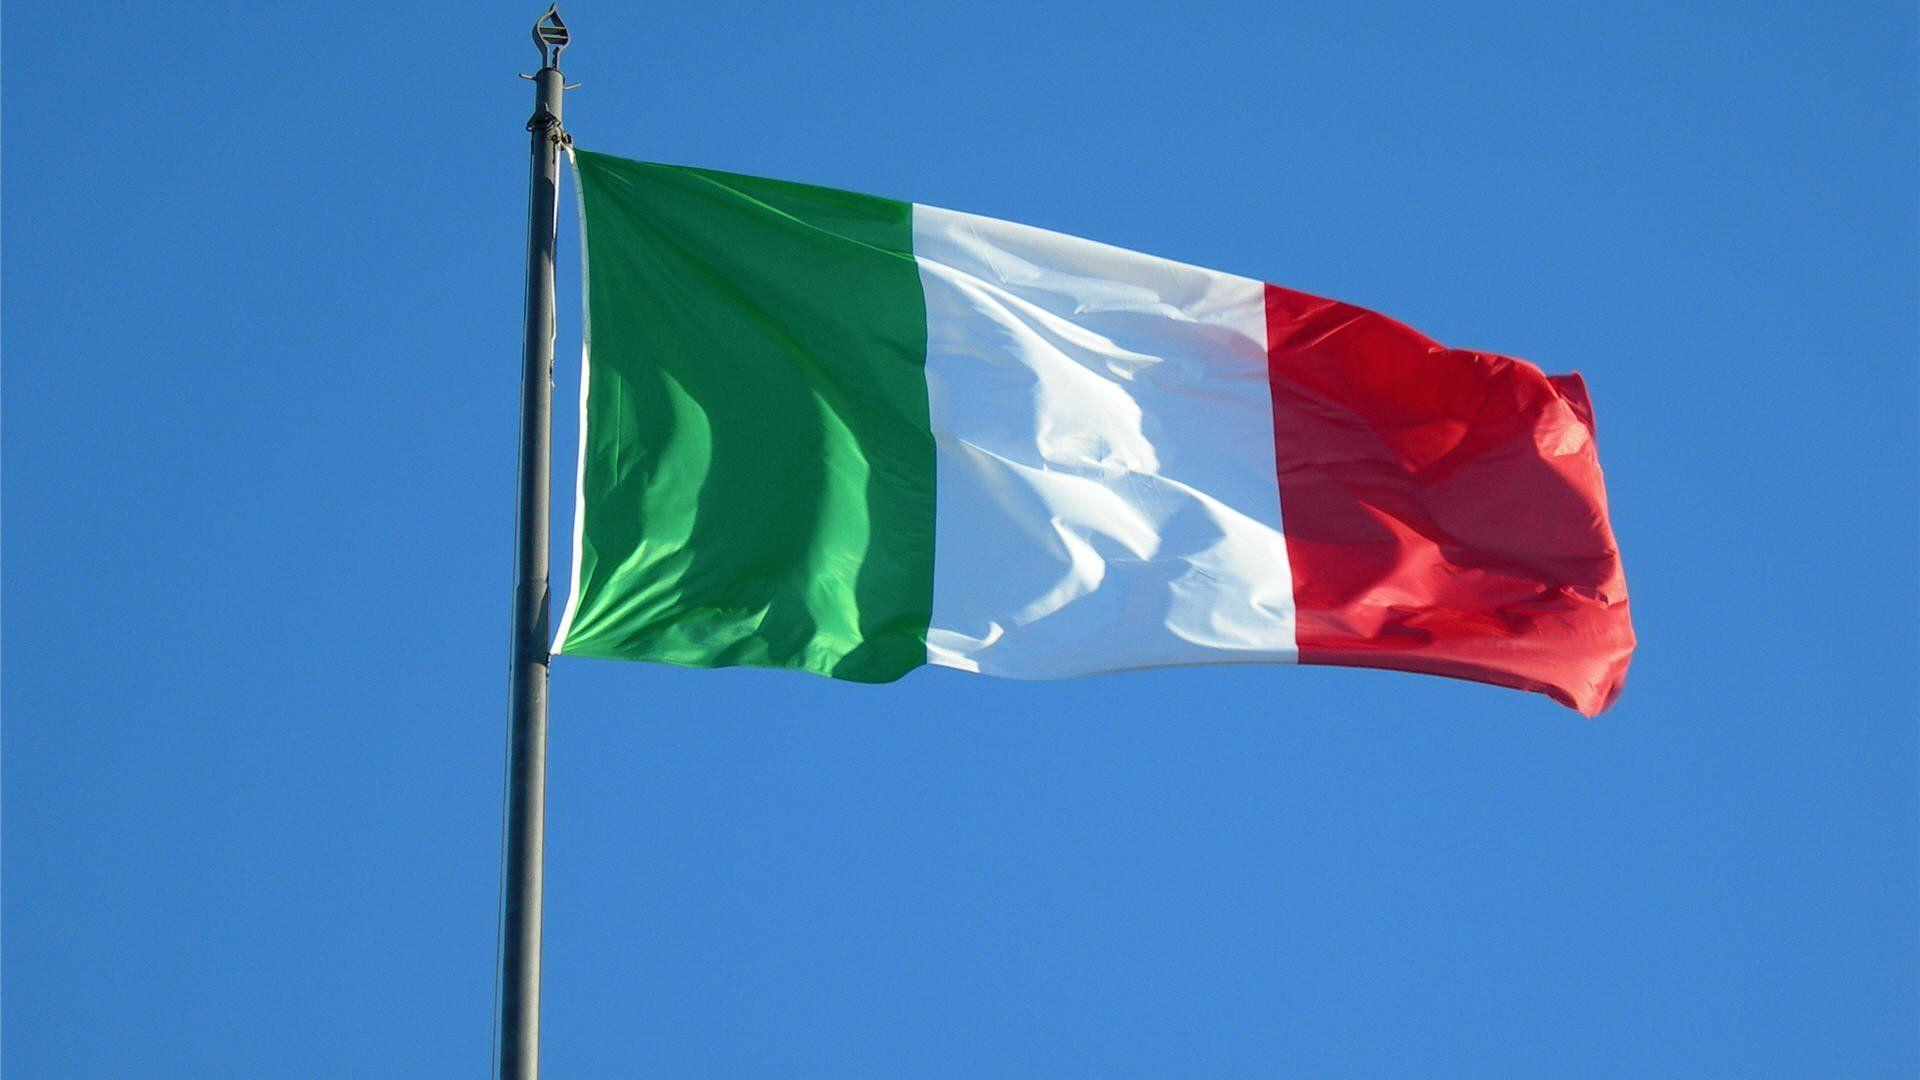 Italy Flag Wallpapers - Wallpaper Cave